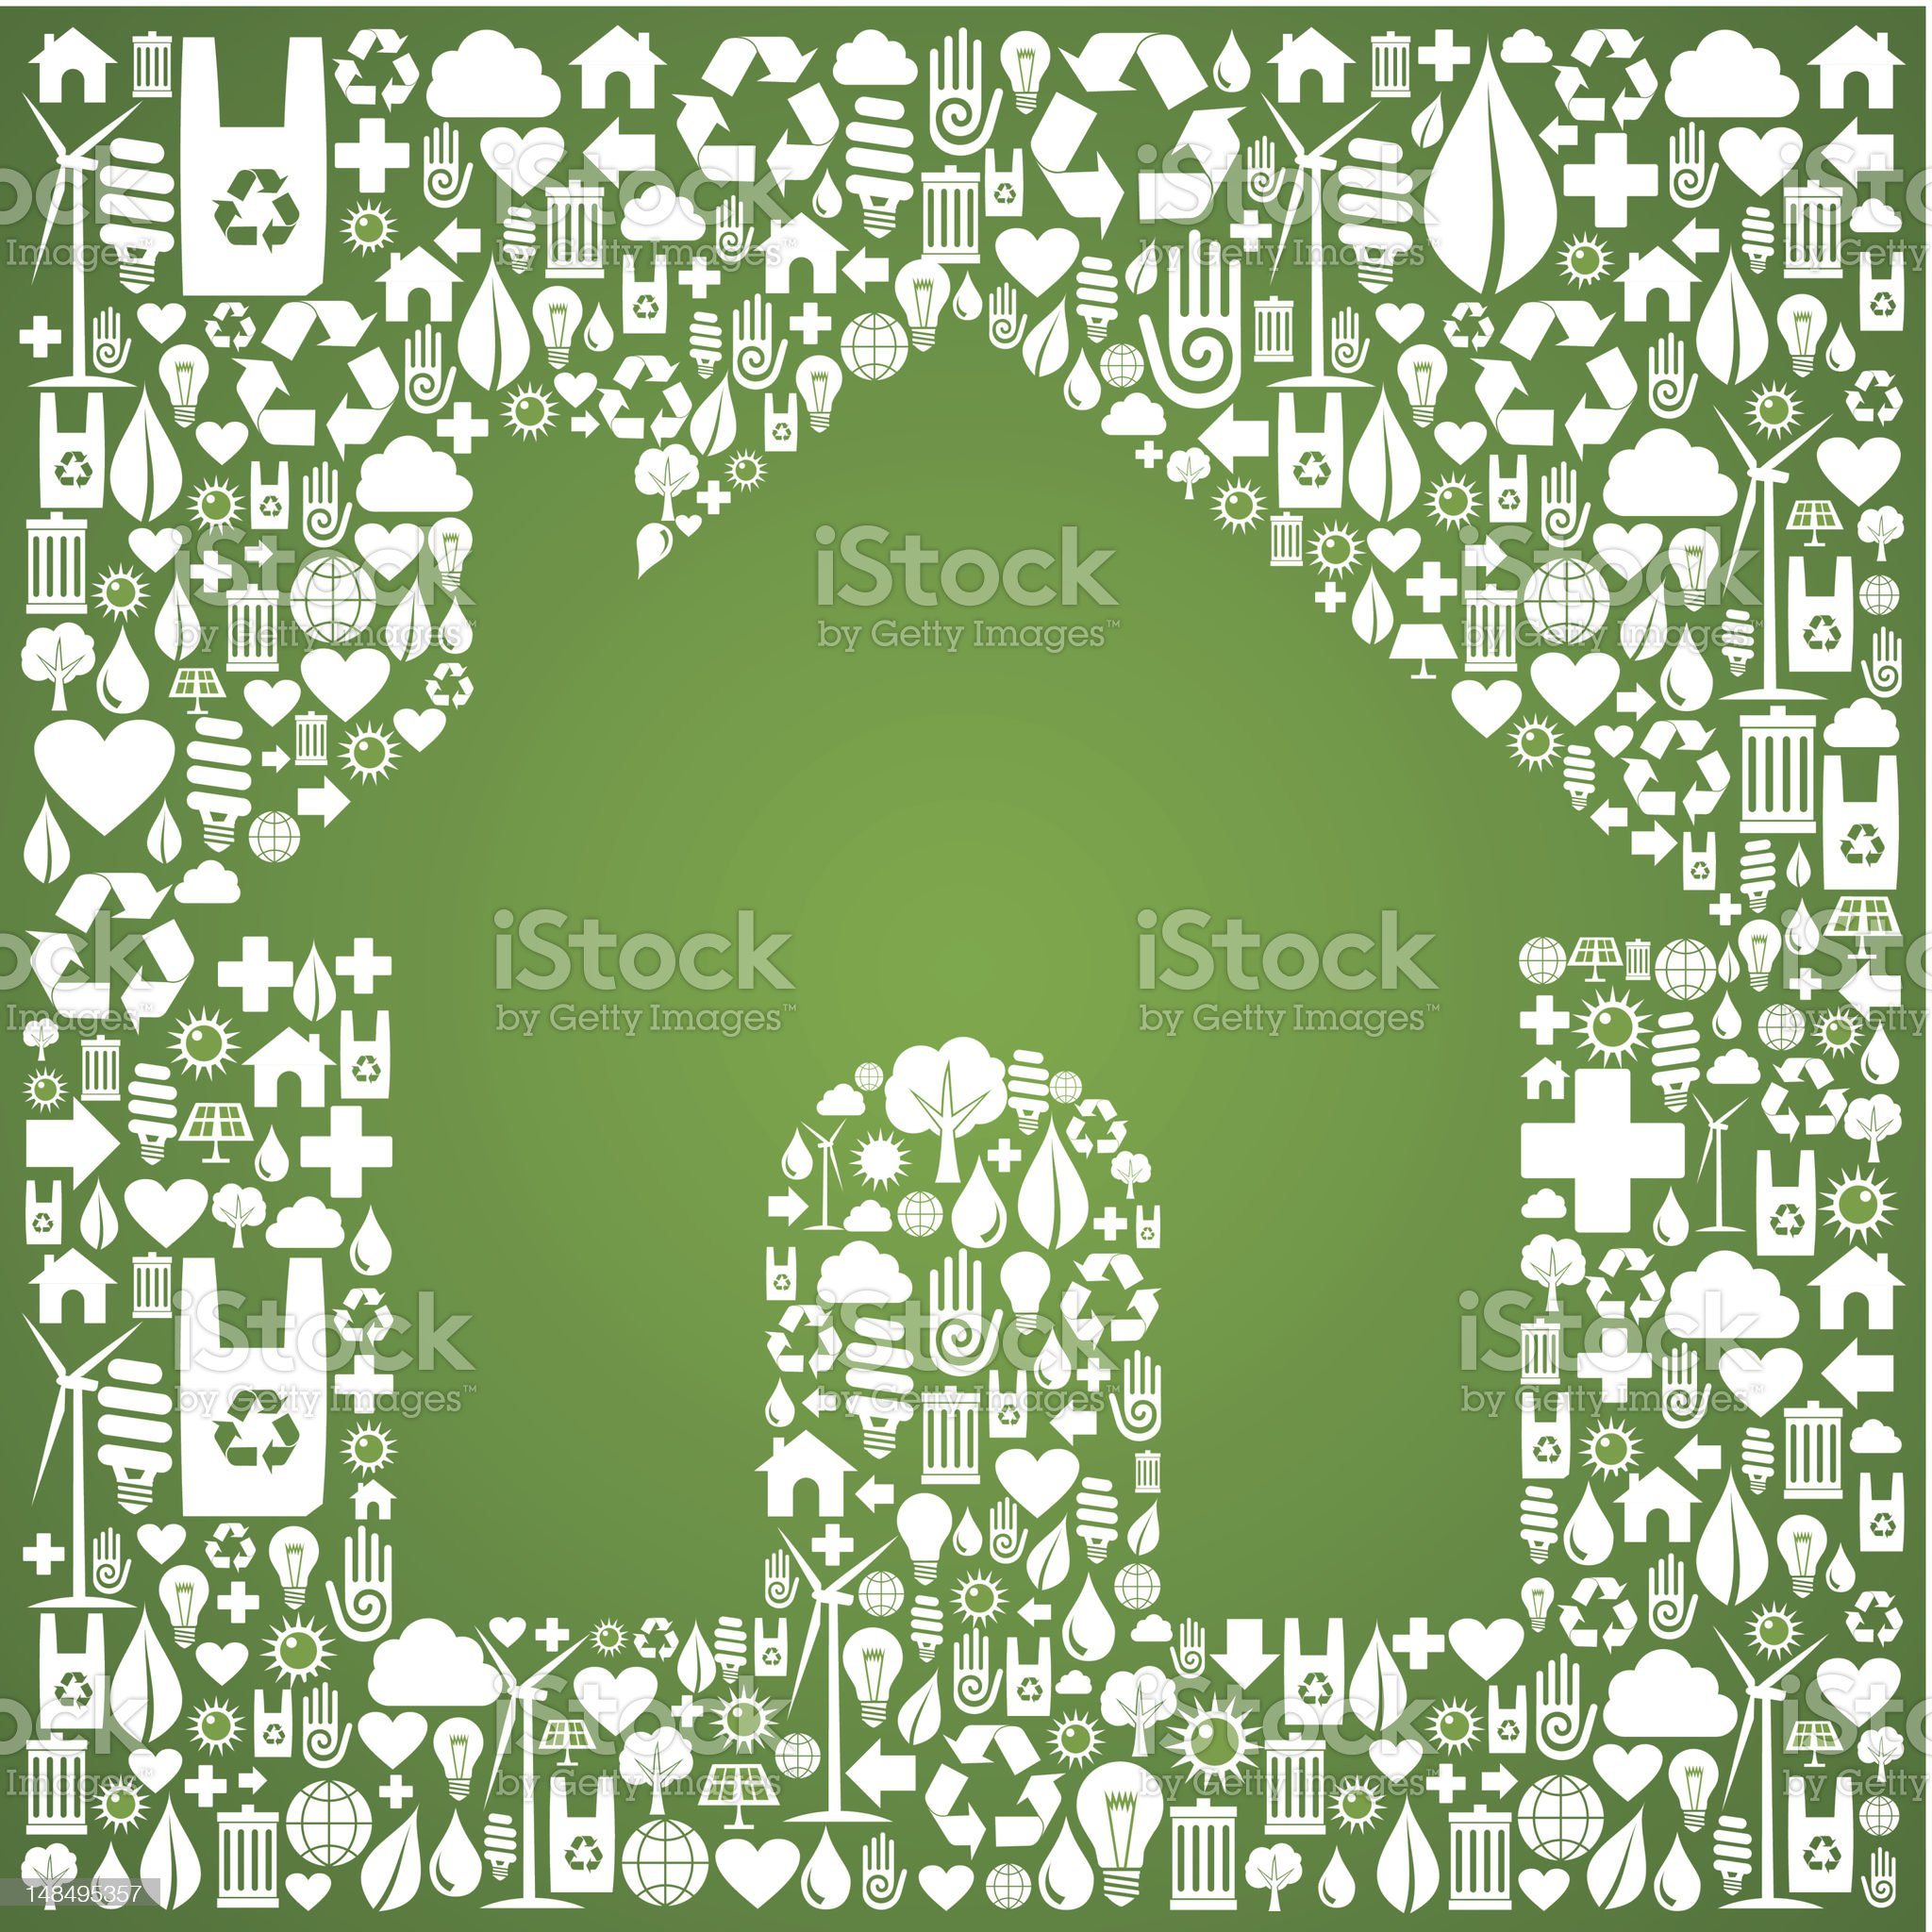 Green house over eco icons background royalty-free stock vector art